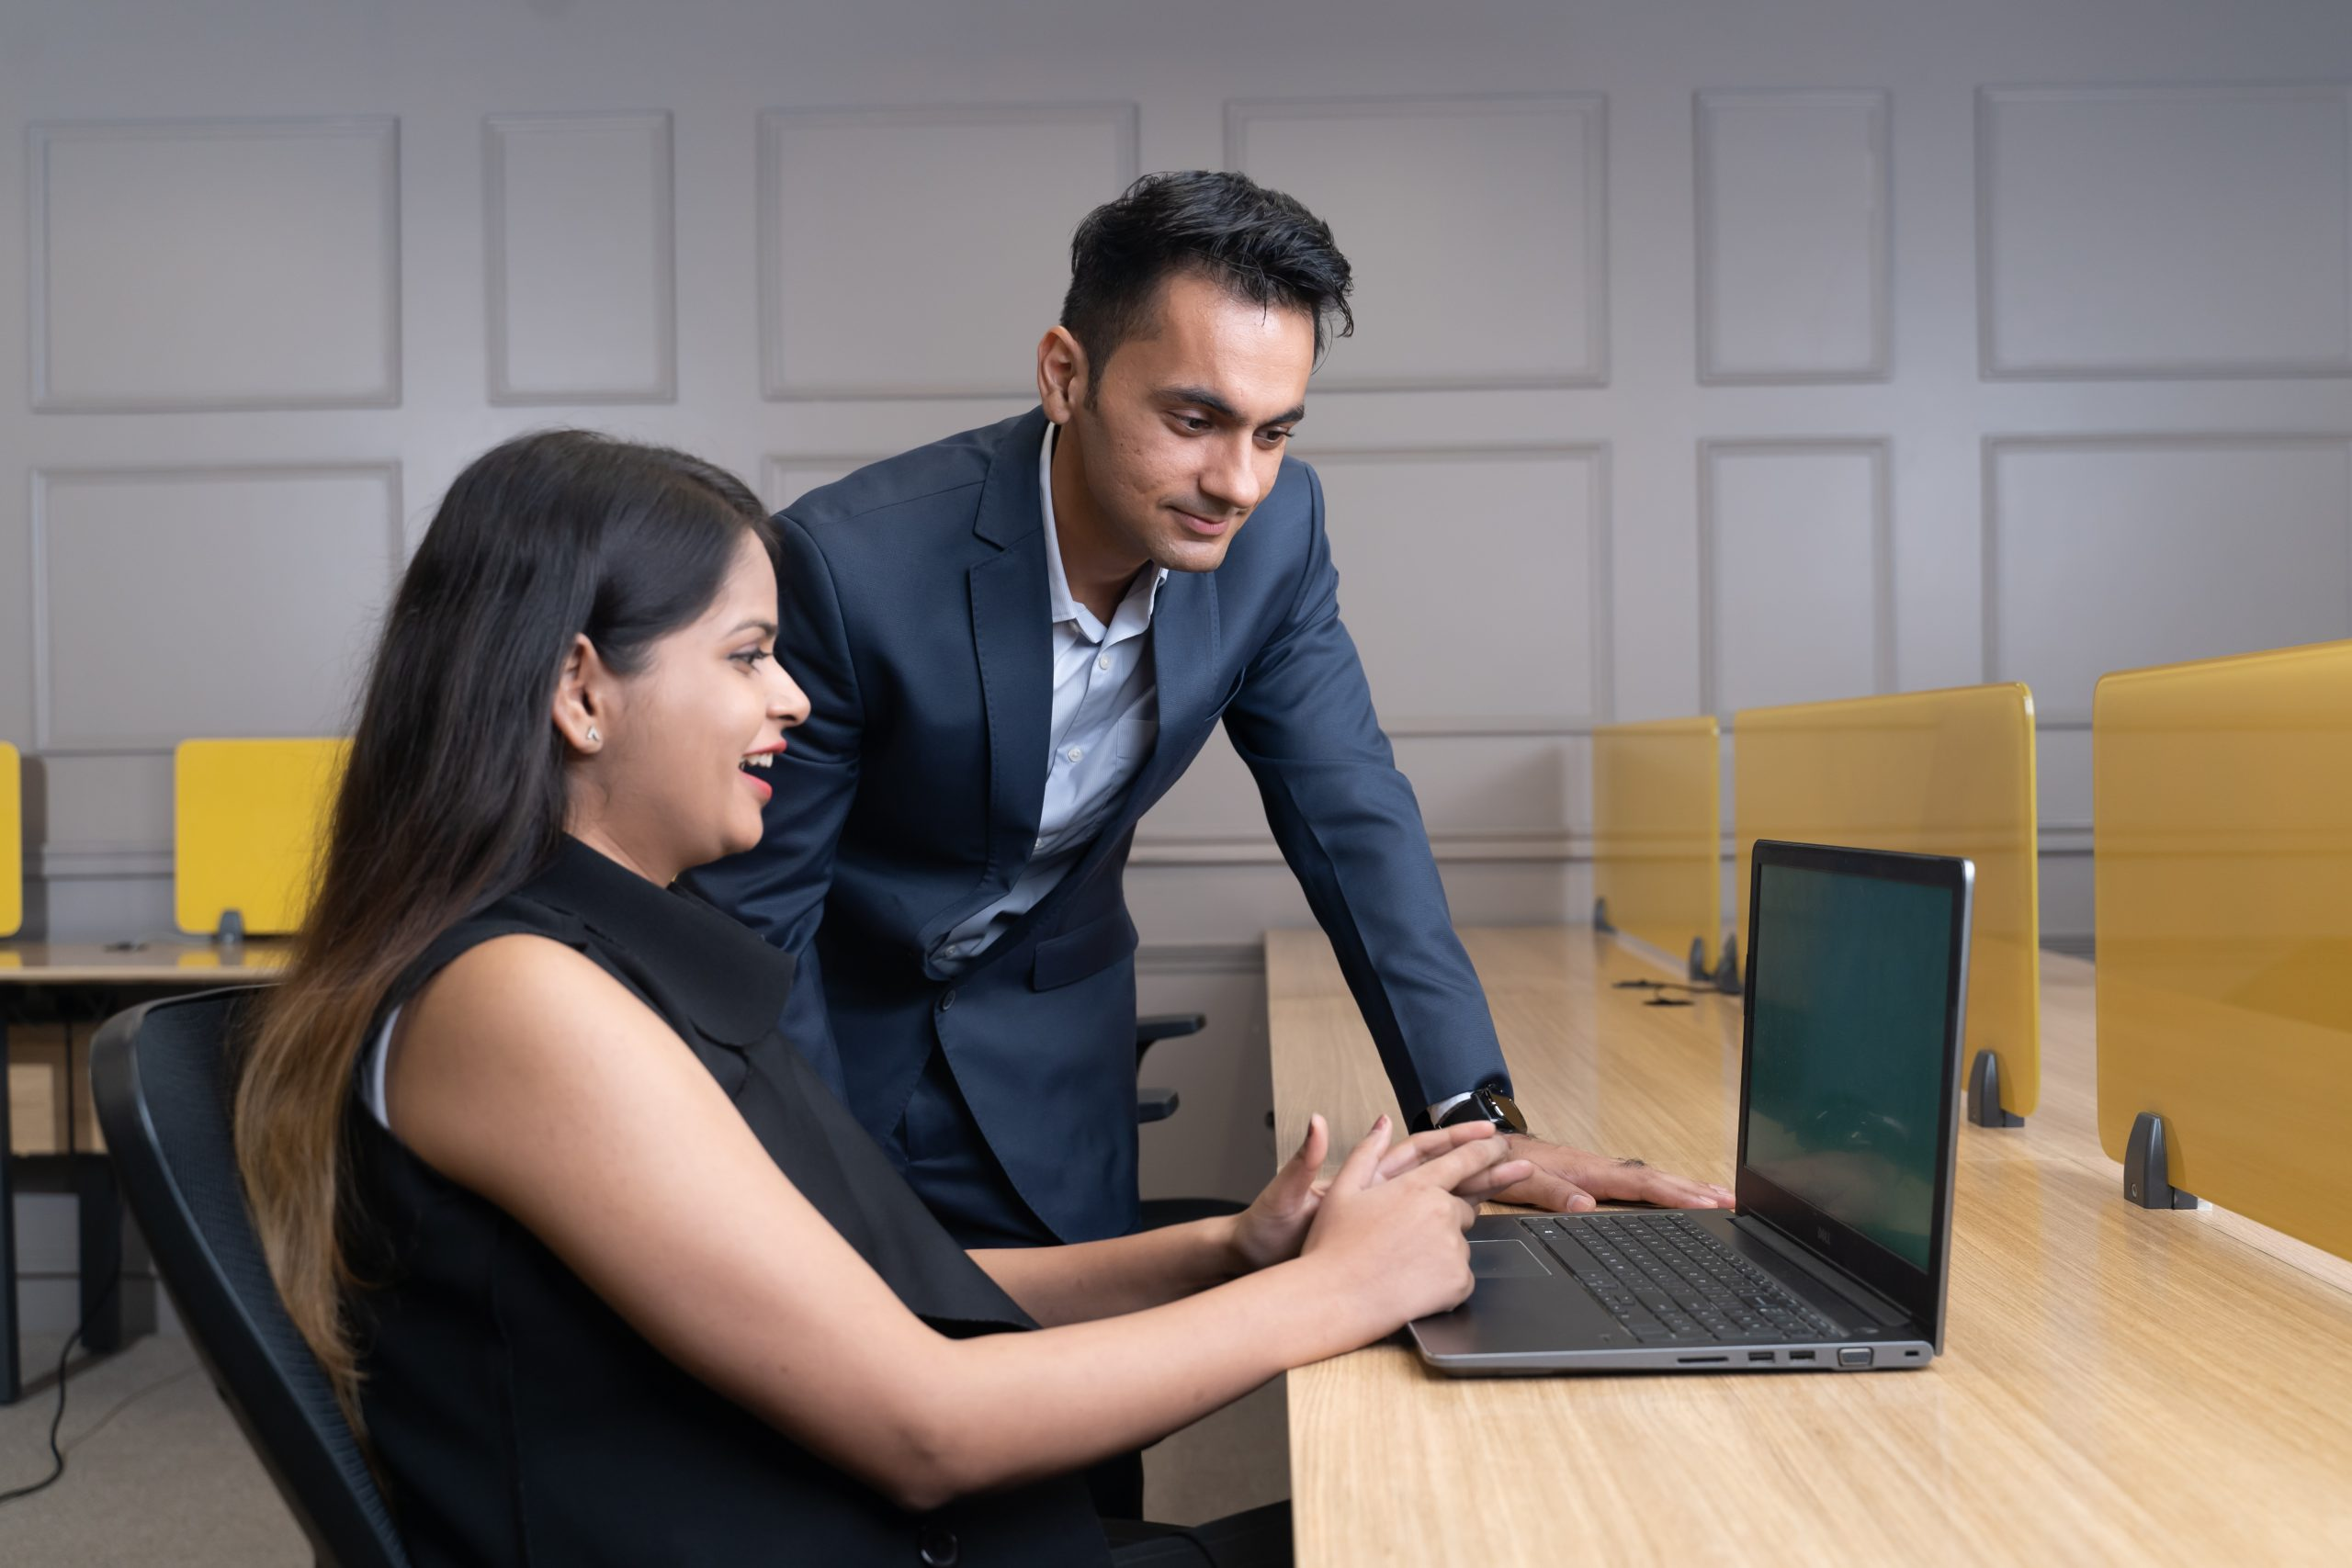 Manager happy with employee work